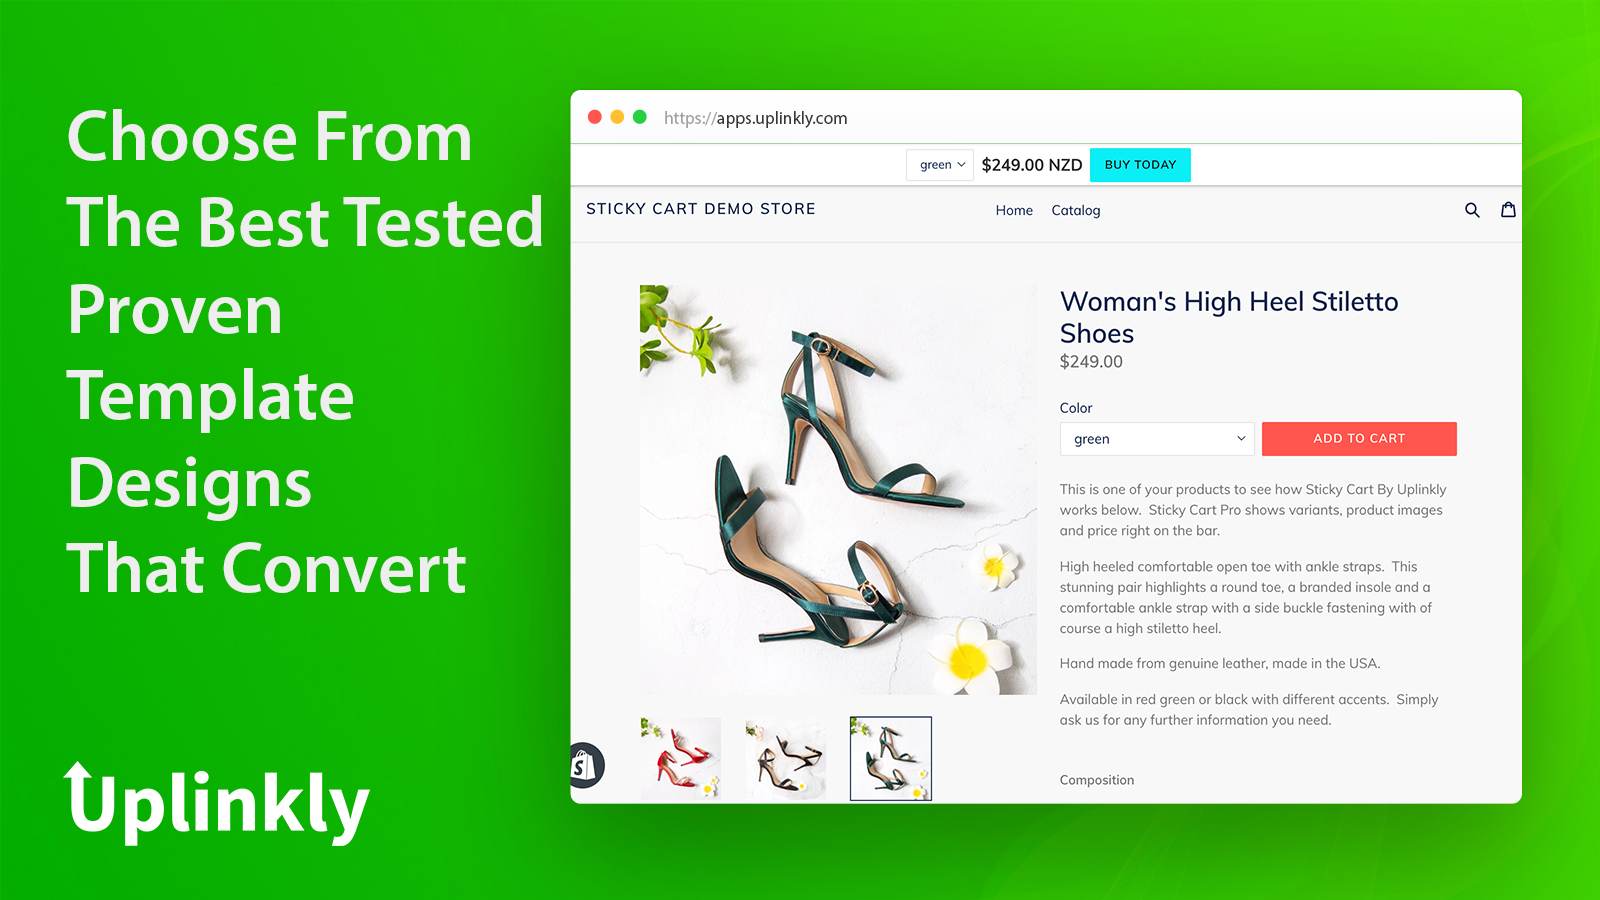 Sticky Cart Pro choose from template designs